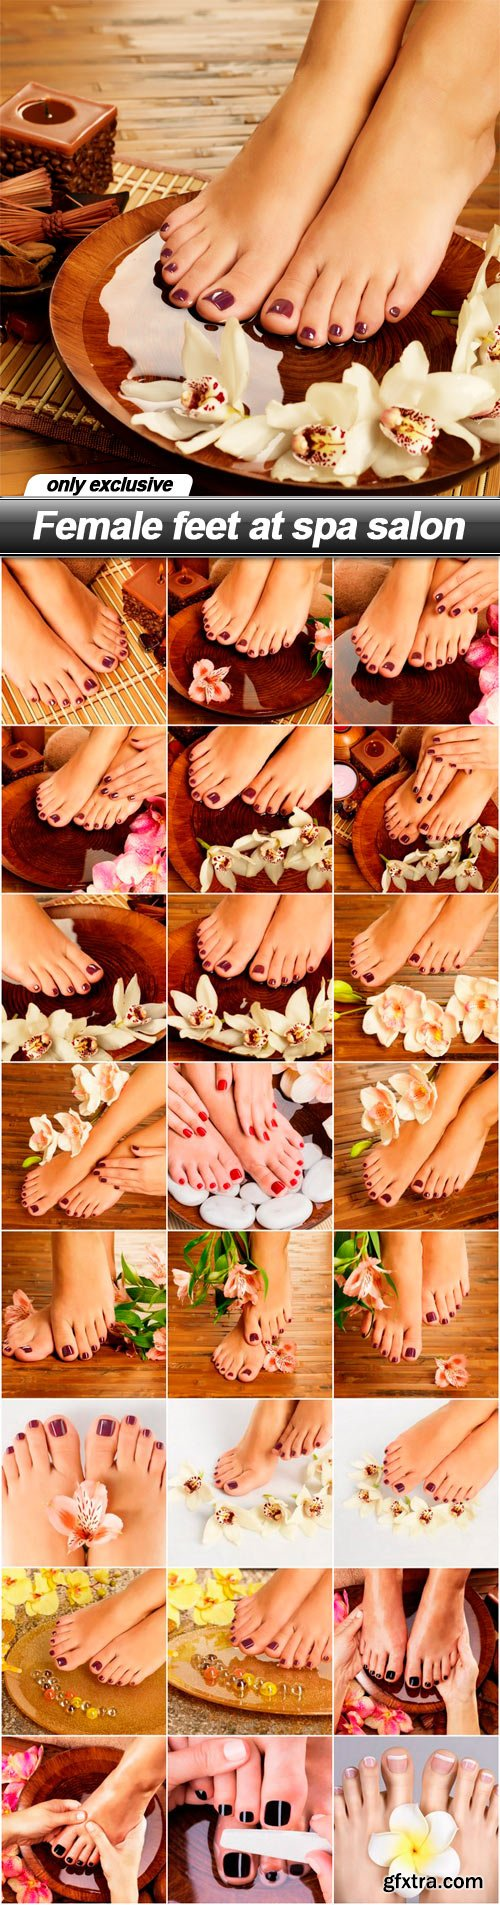 Female feet at spa salon - 25 UHQ JPEG